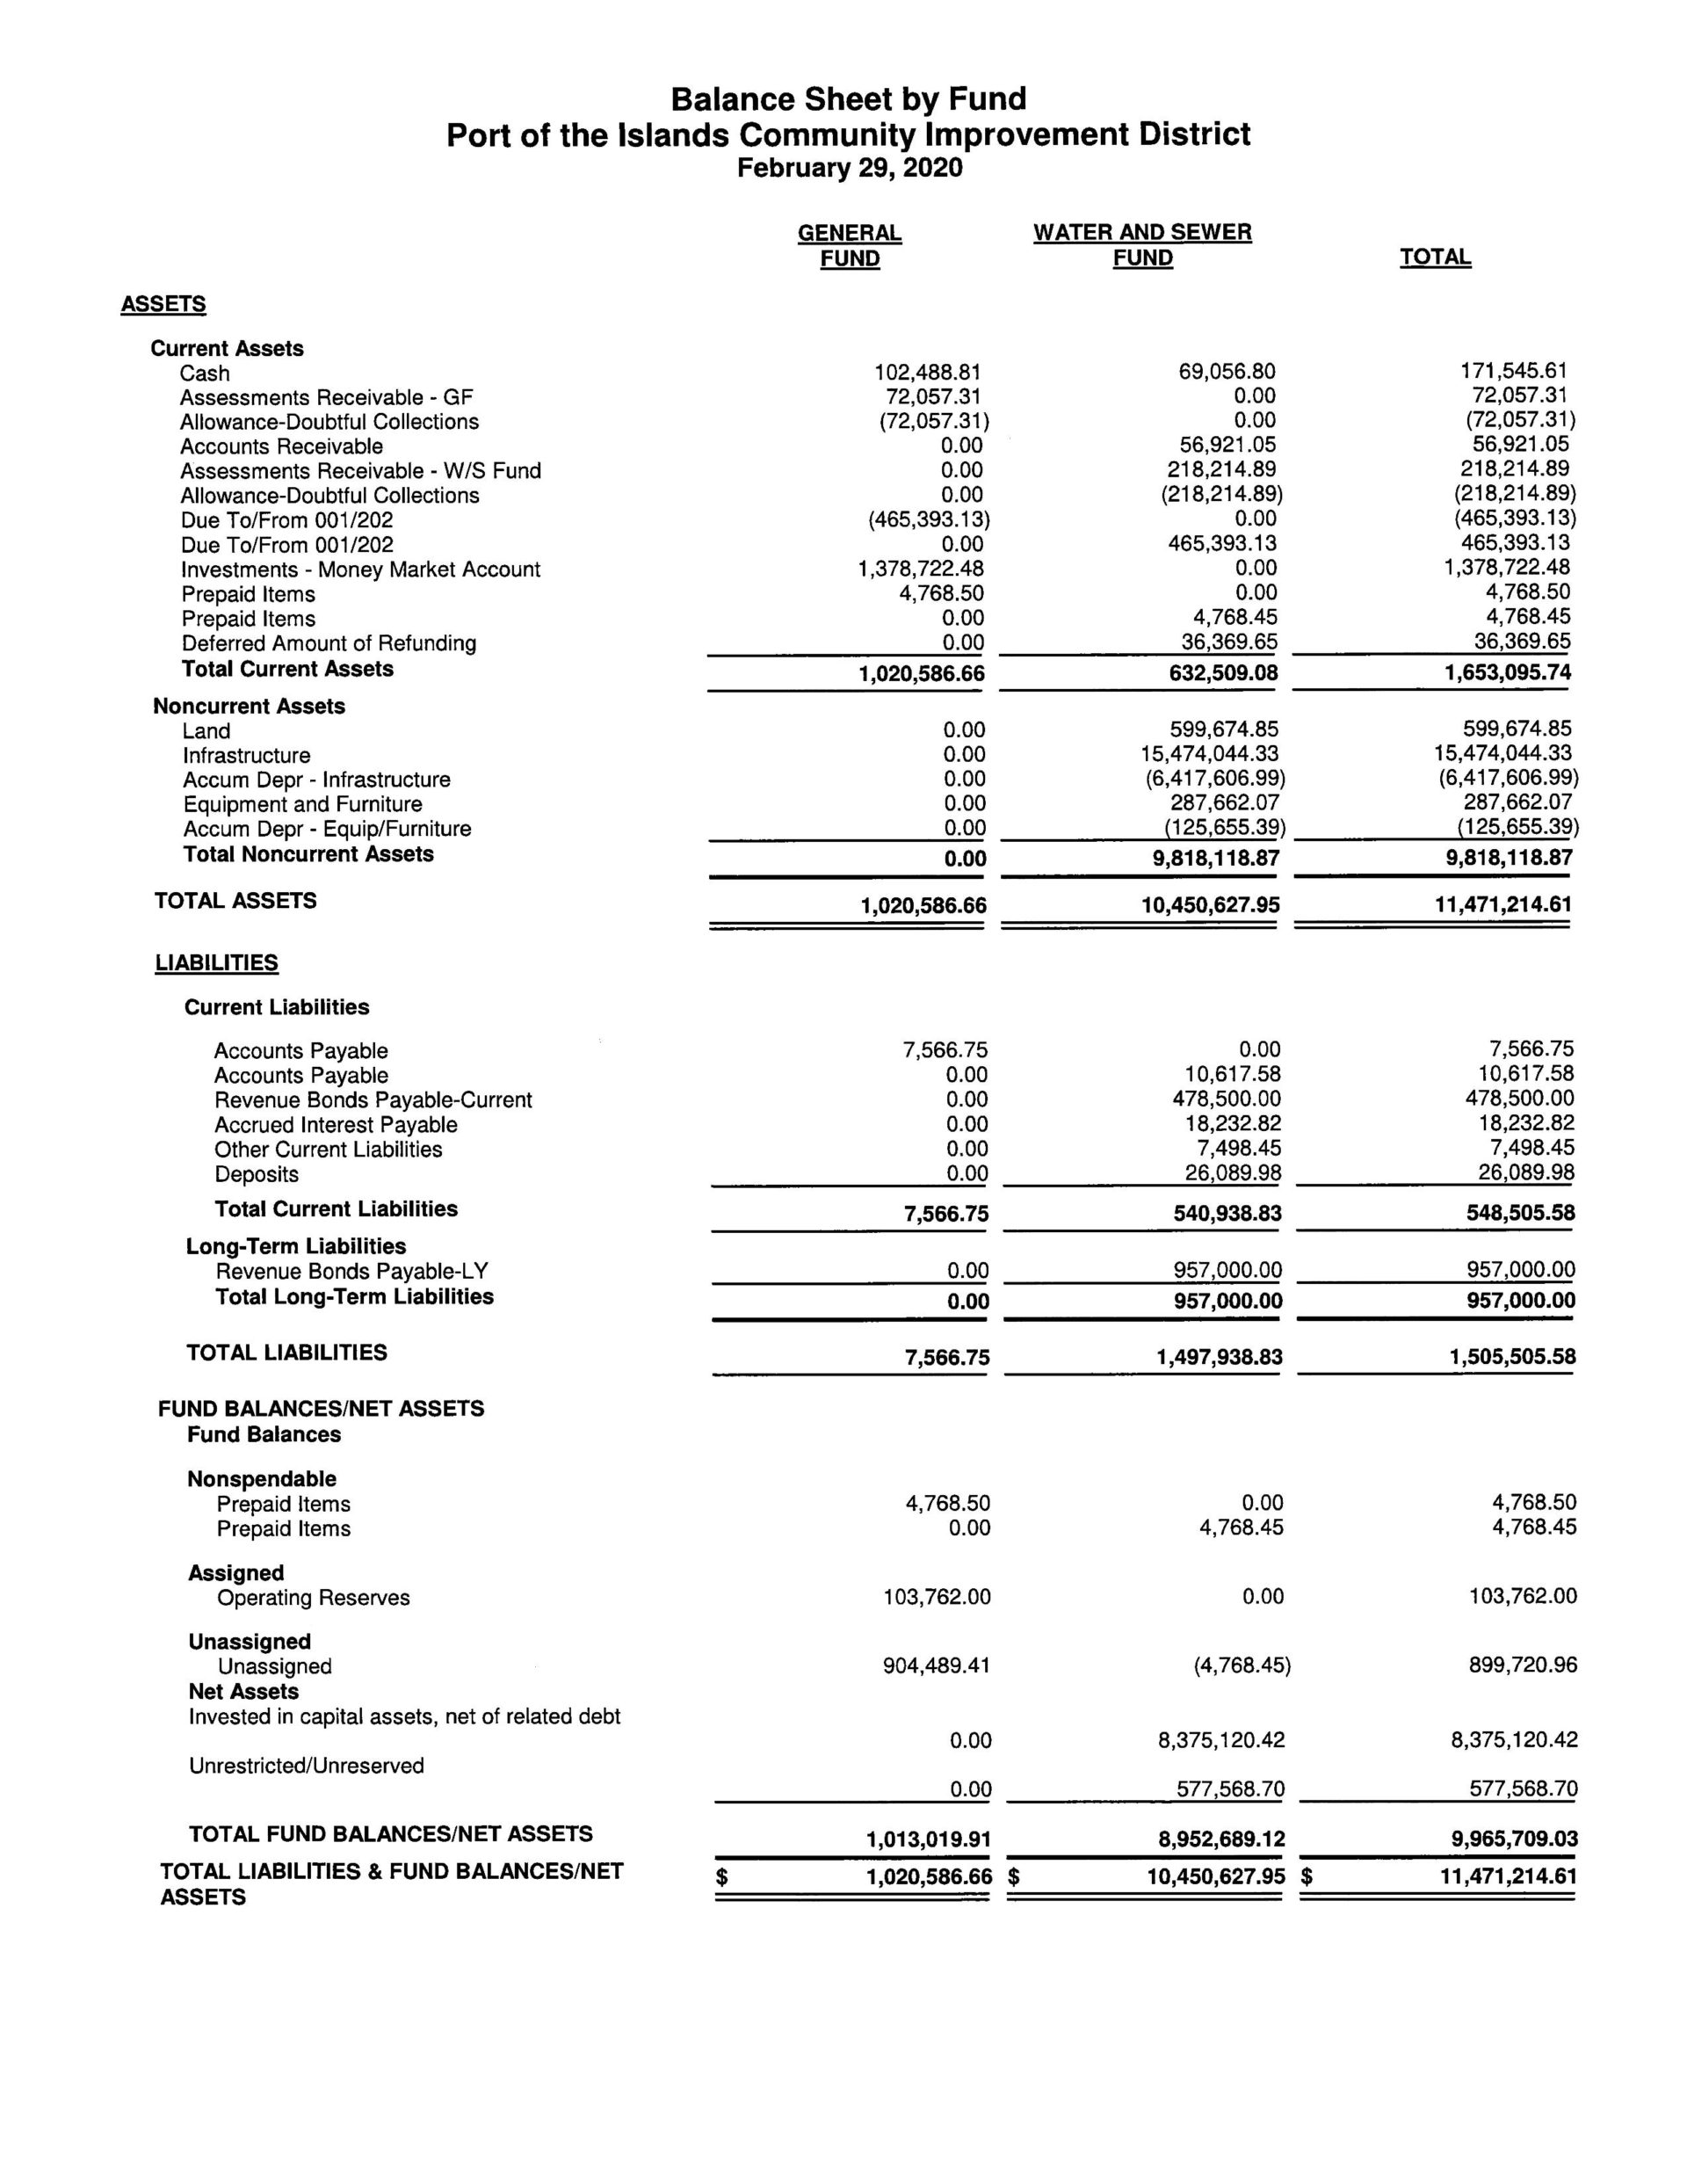 Port of the Islands - Balance Sheet